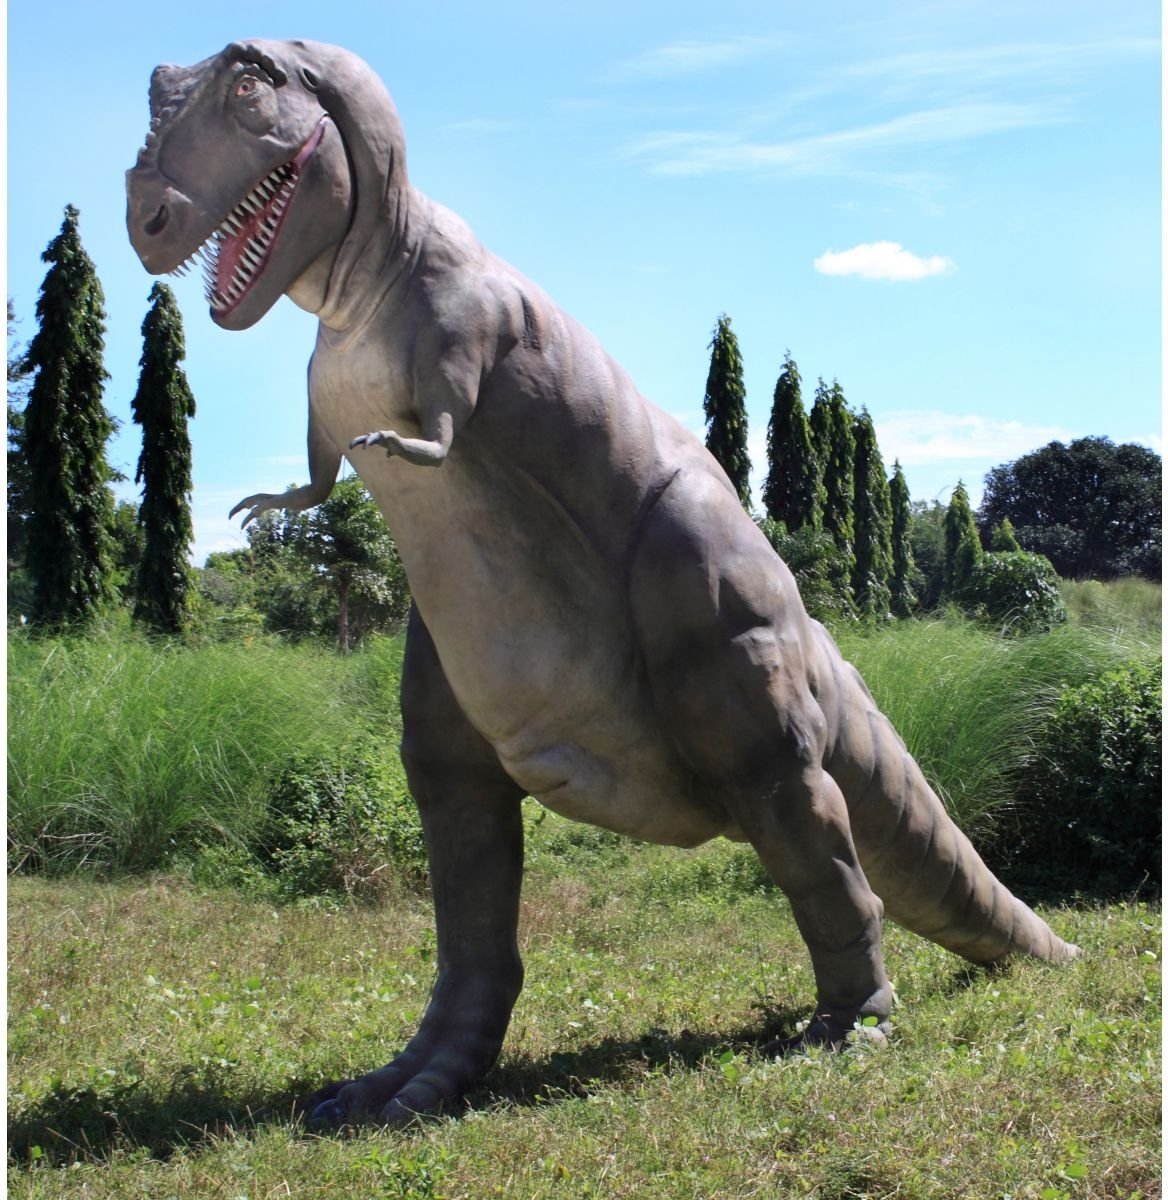 The Jurassic-Sized T-Rex Dinosaur Statue